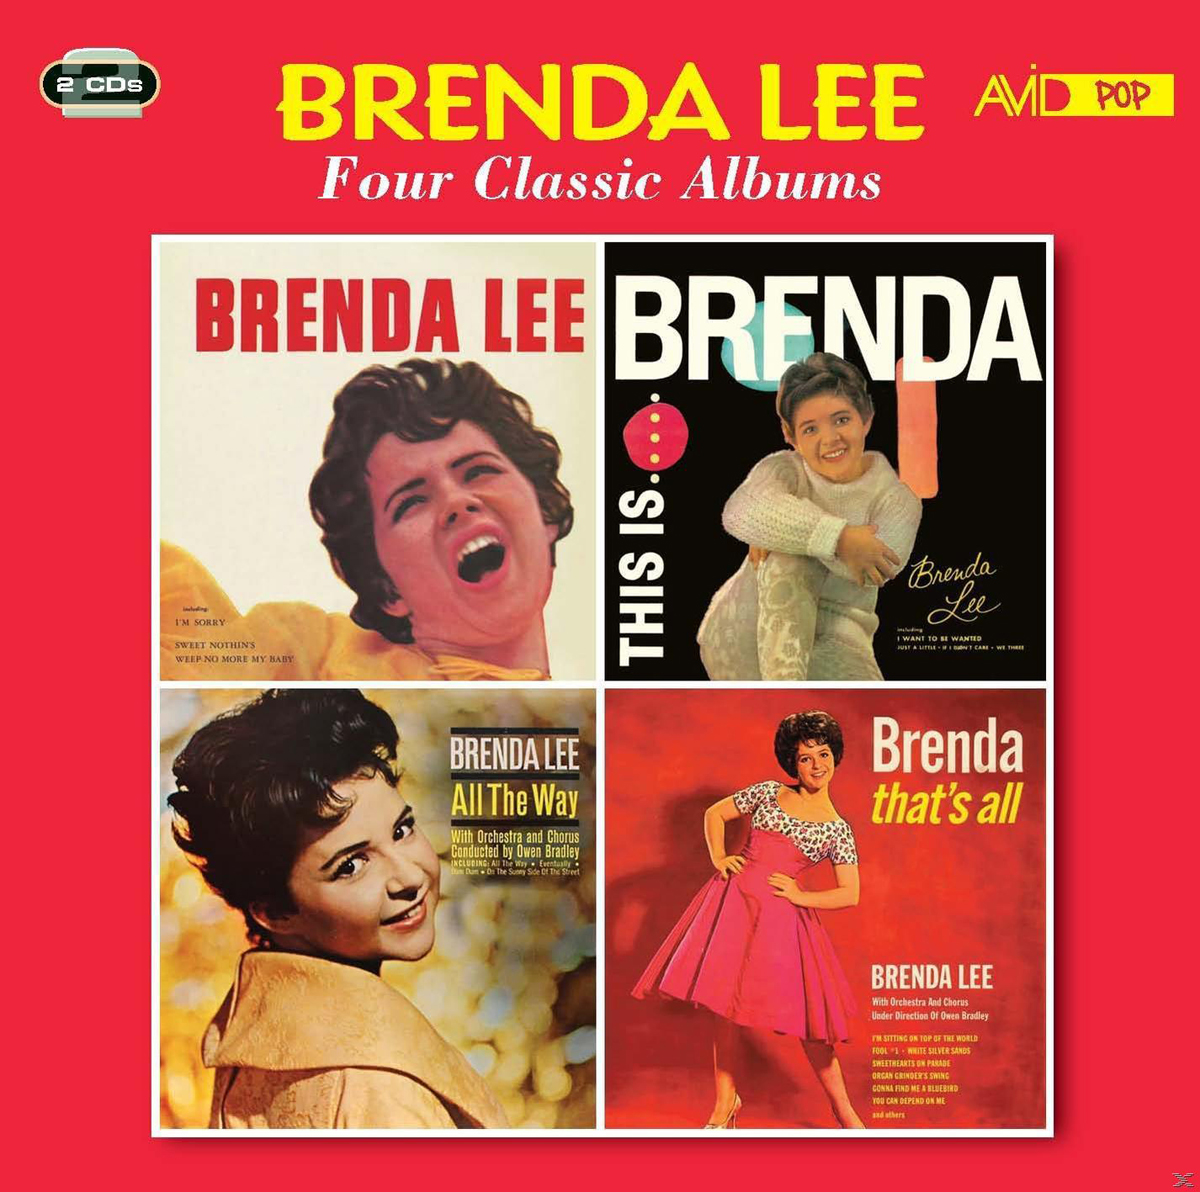 бренда ли brenda lee brenda that s all all alone am i Бренда Ли Lee Brenda. Four Classic Albums (2CD)